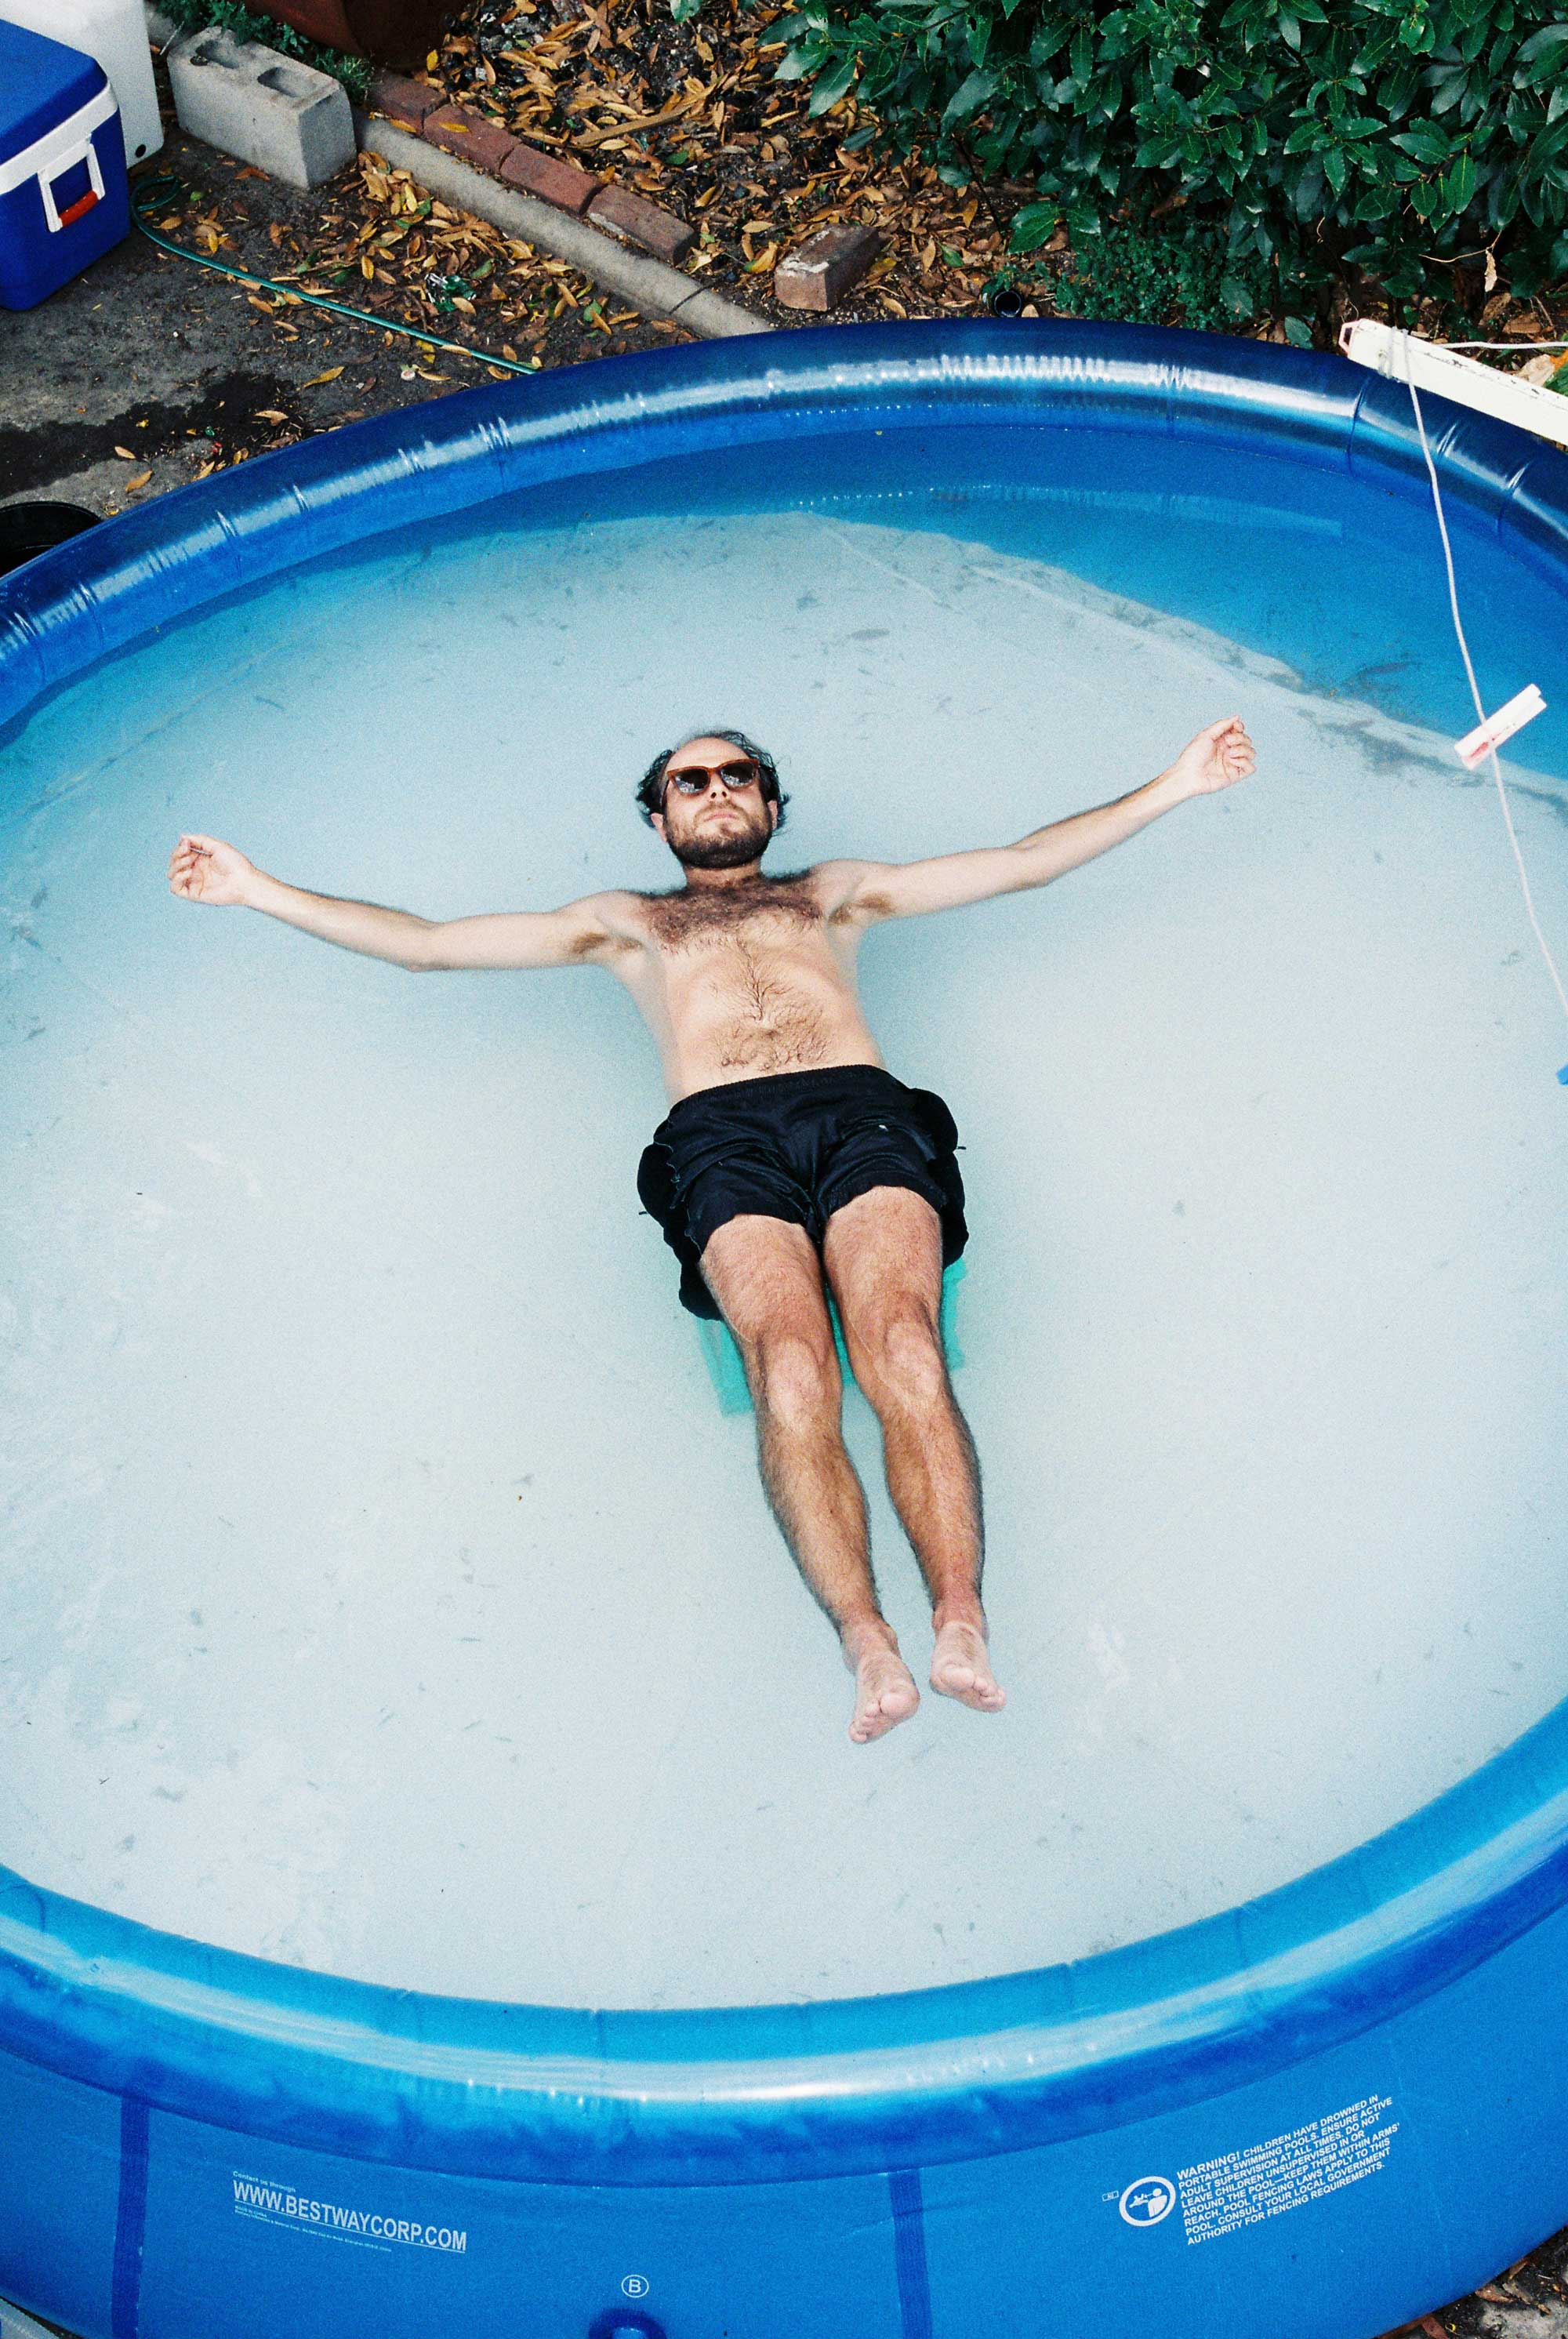 celebrating the backyard paddling pools that make summer in the